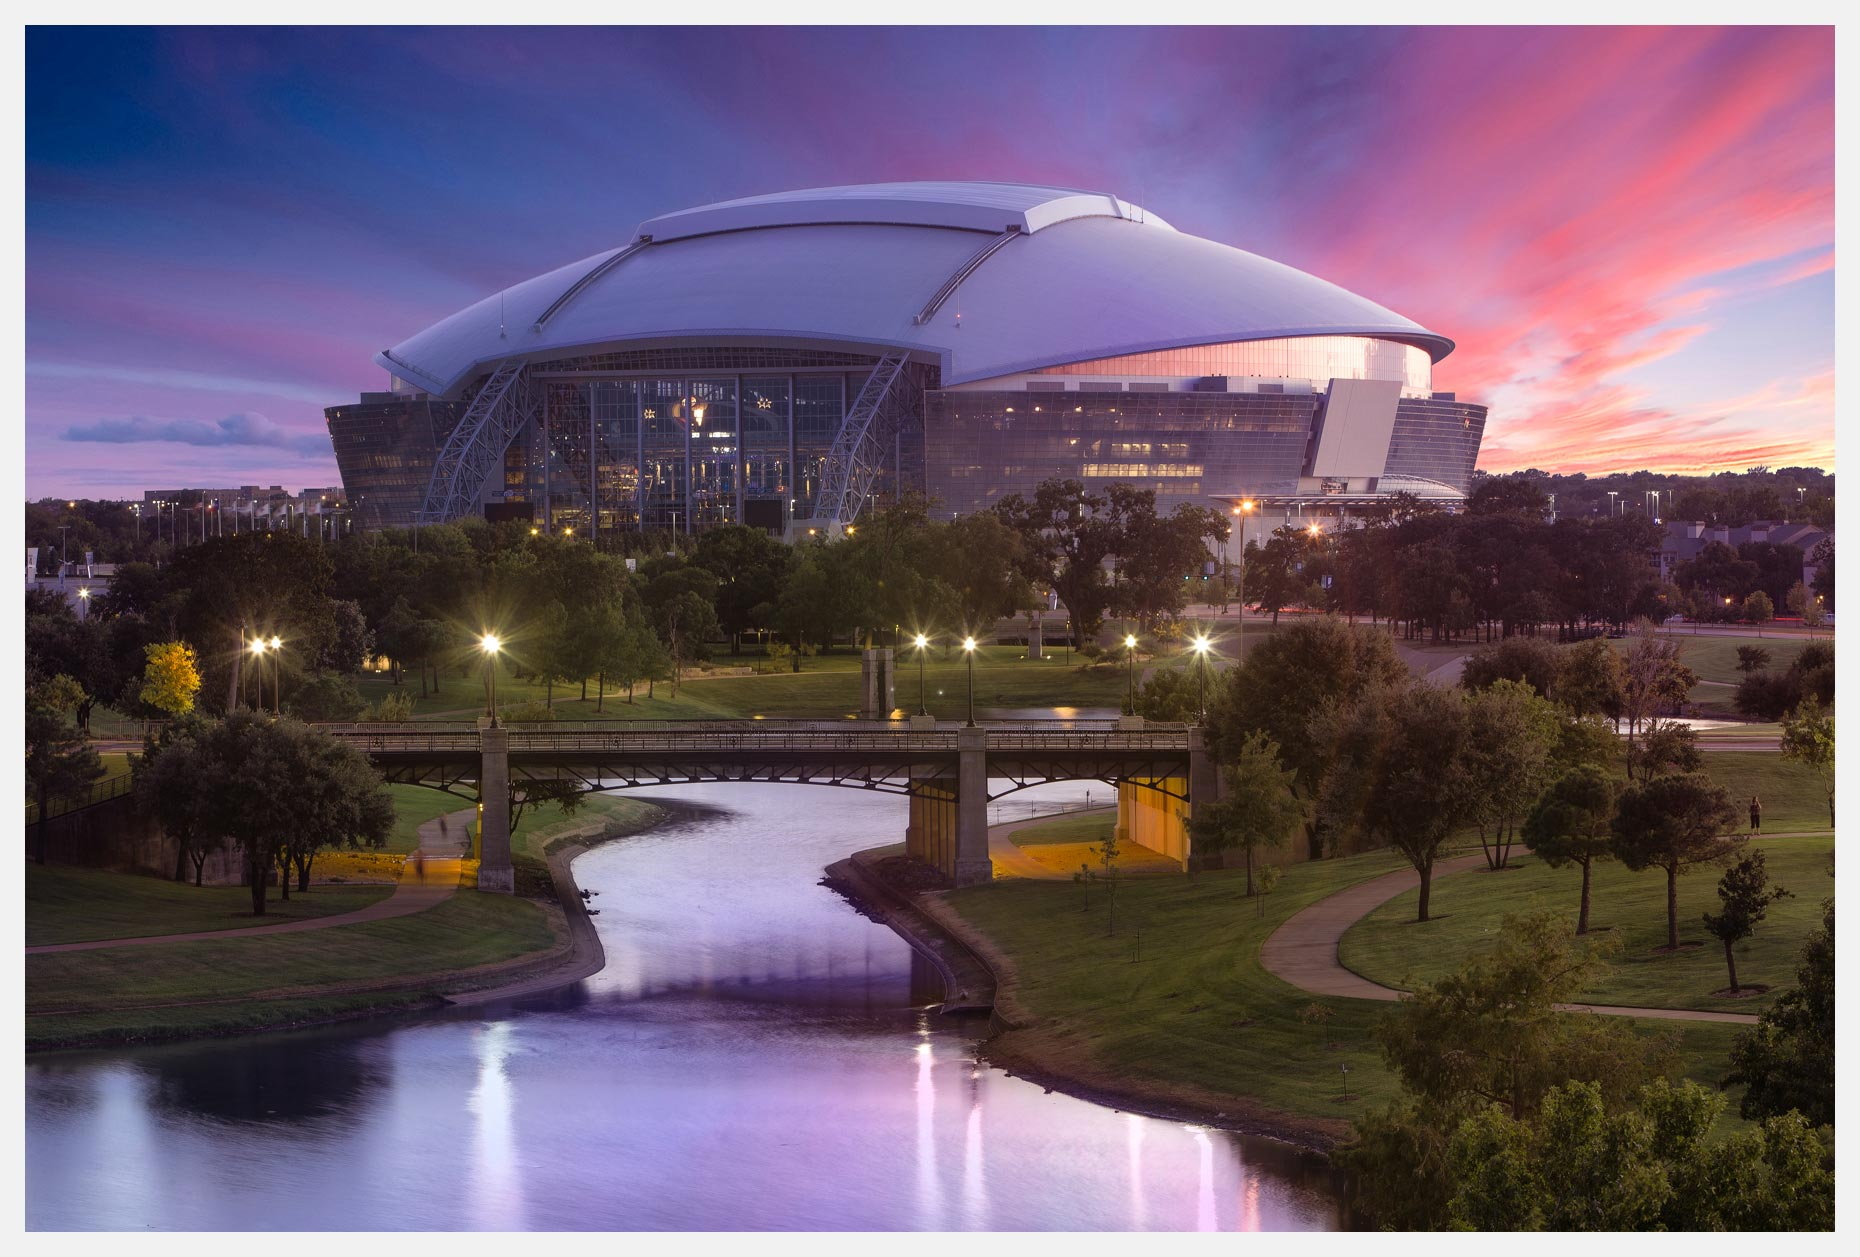 AT&T-Dallas-Cowboys-Stadium-Arlington-Texas